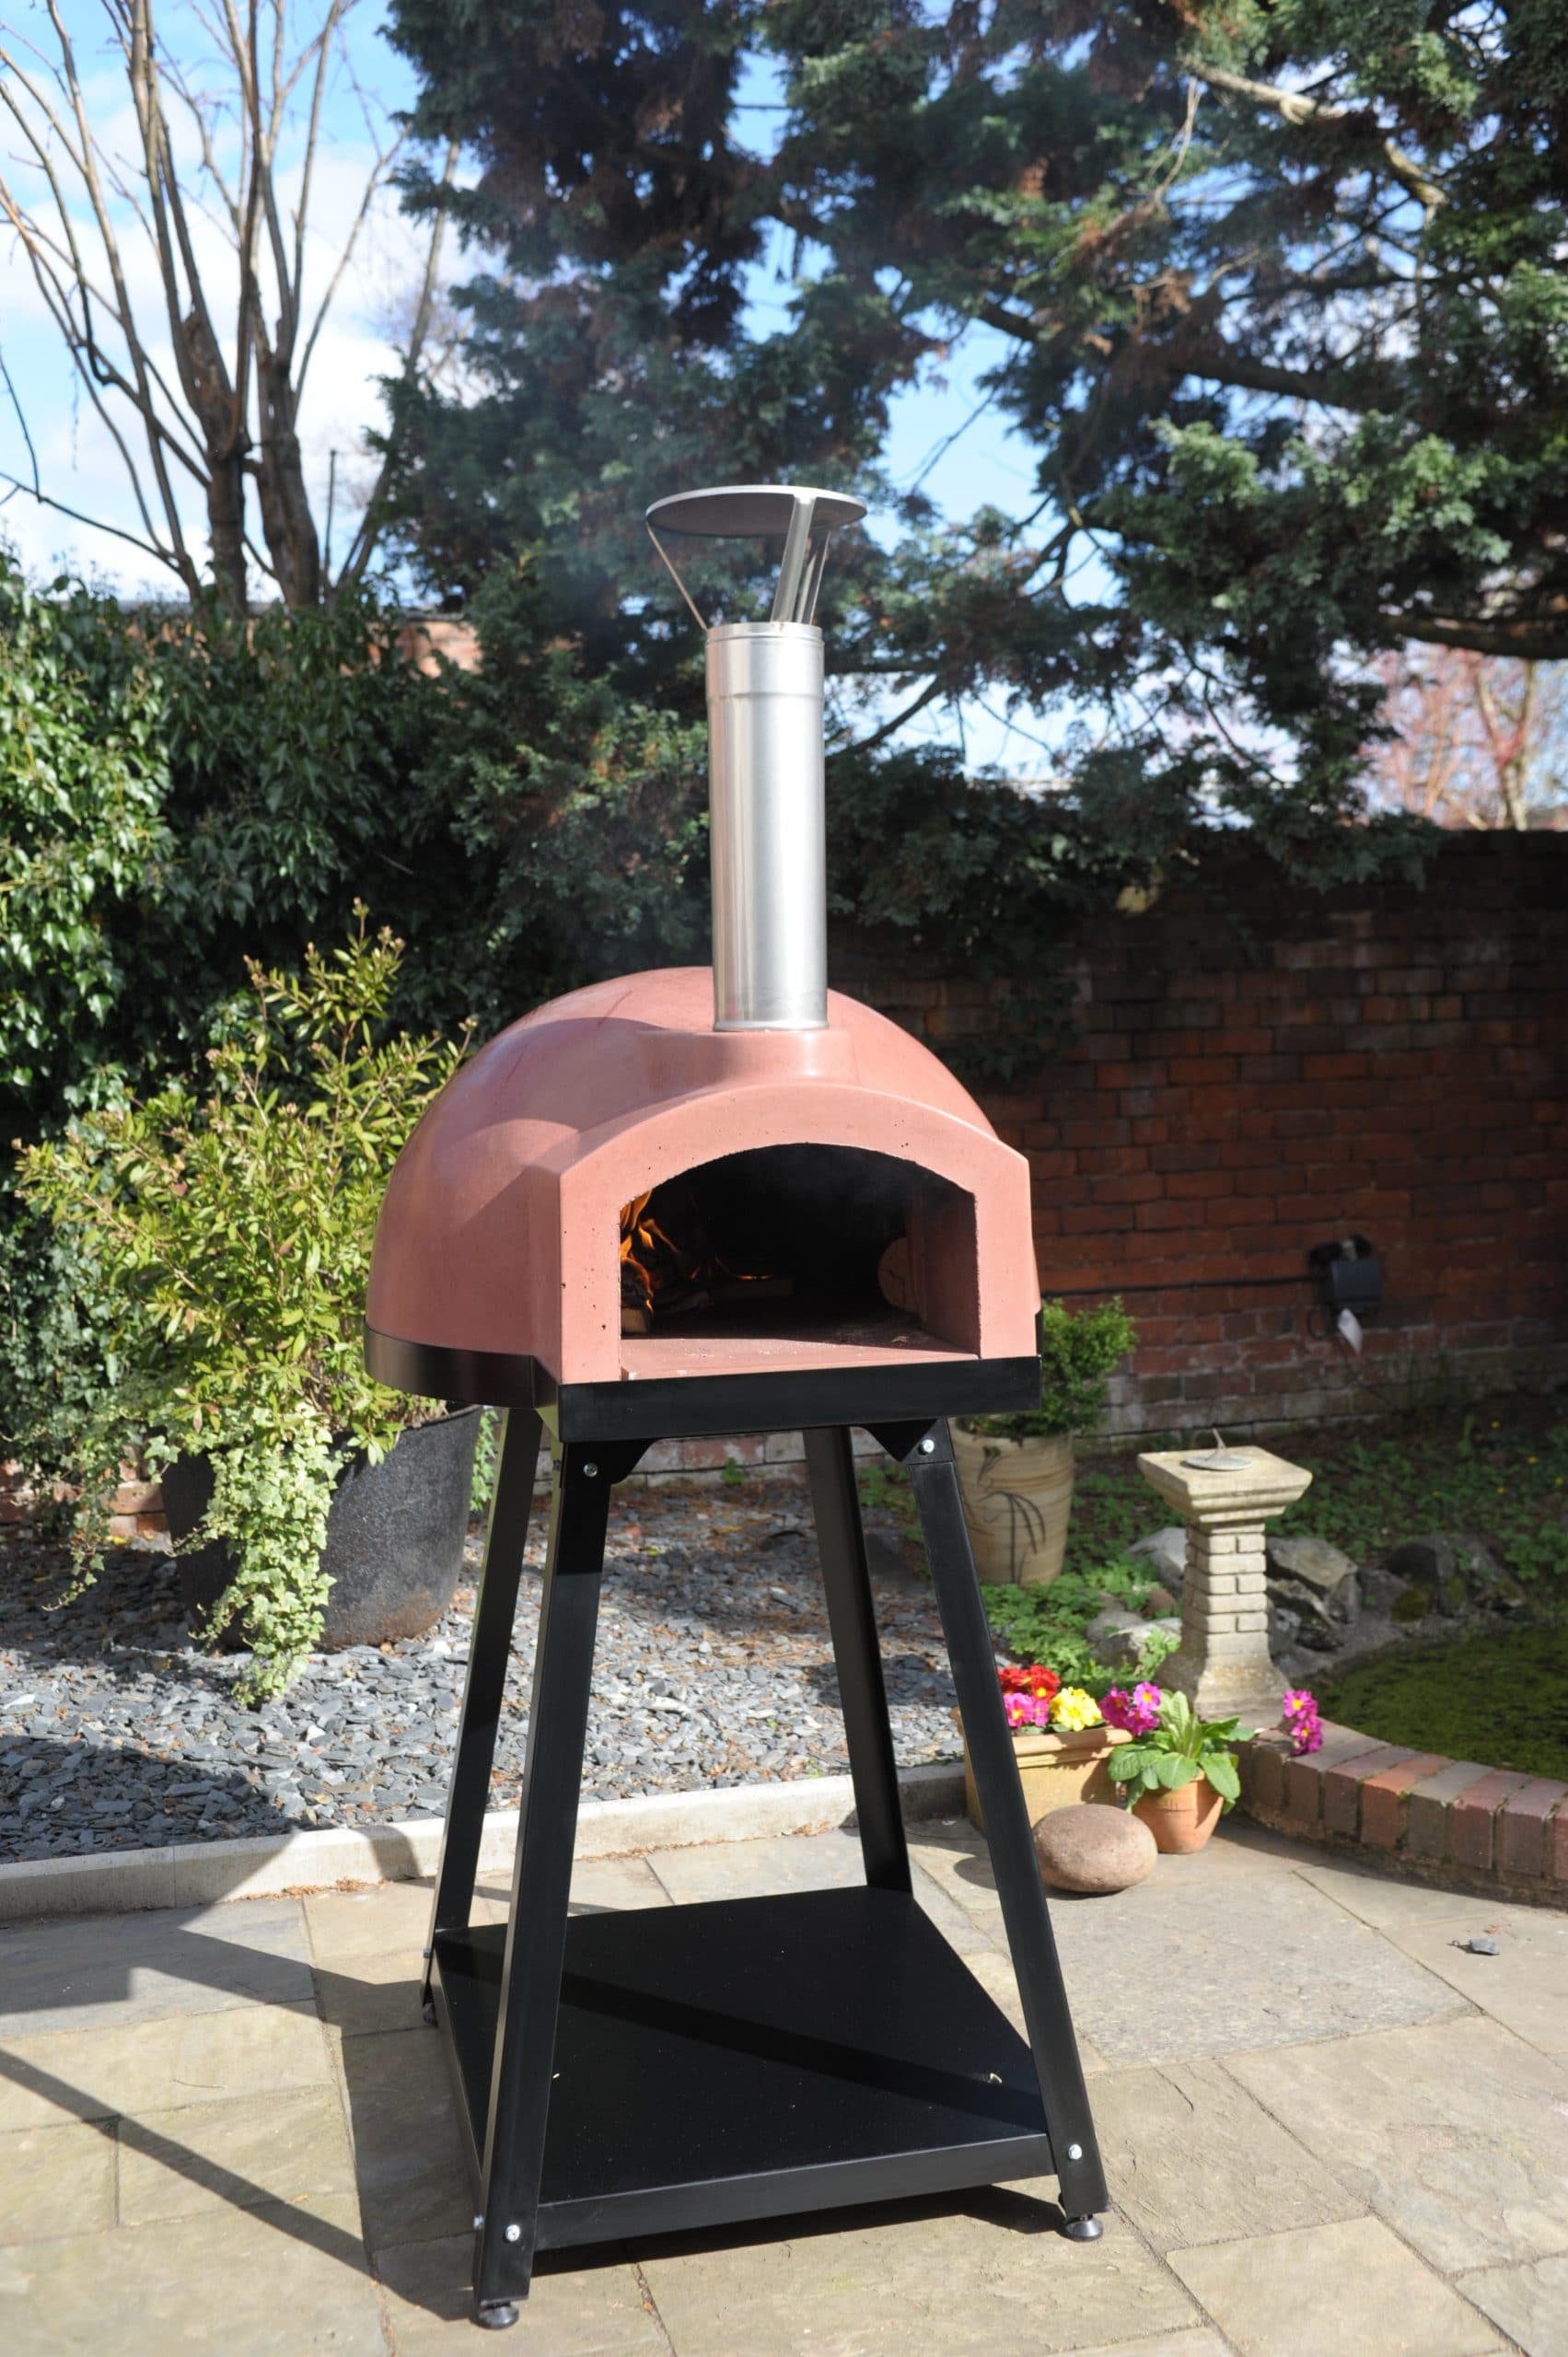 Stone Bake Oven Stands